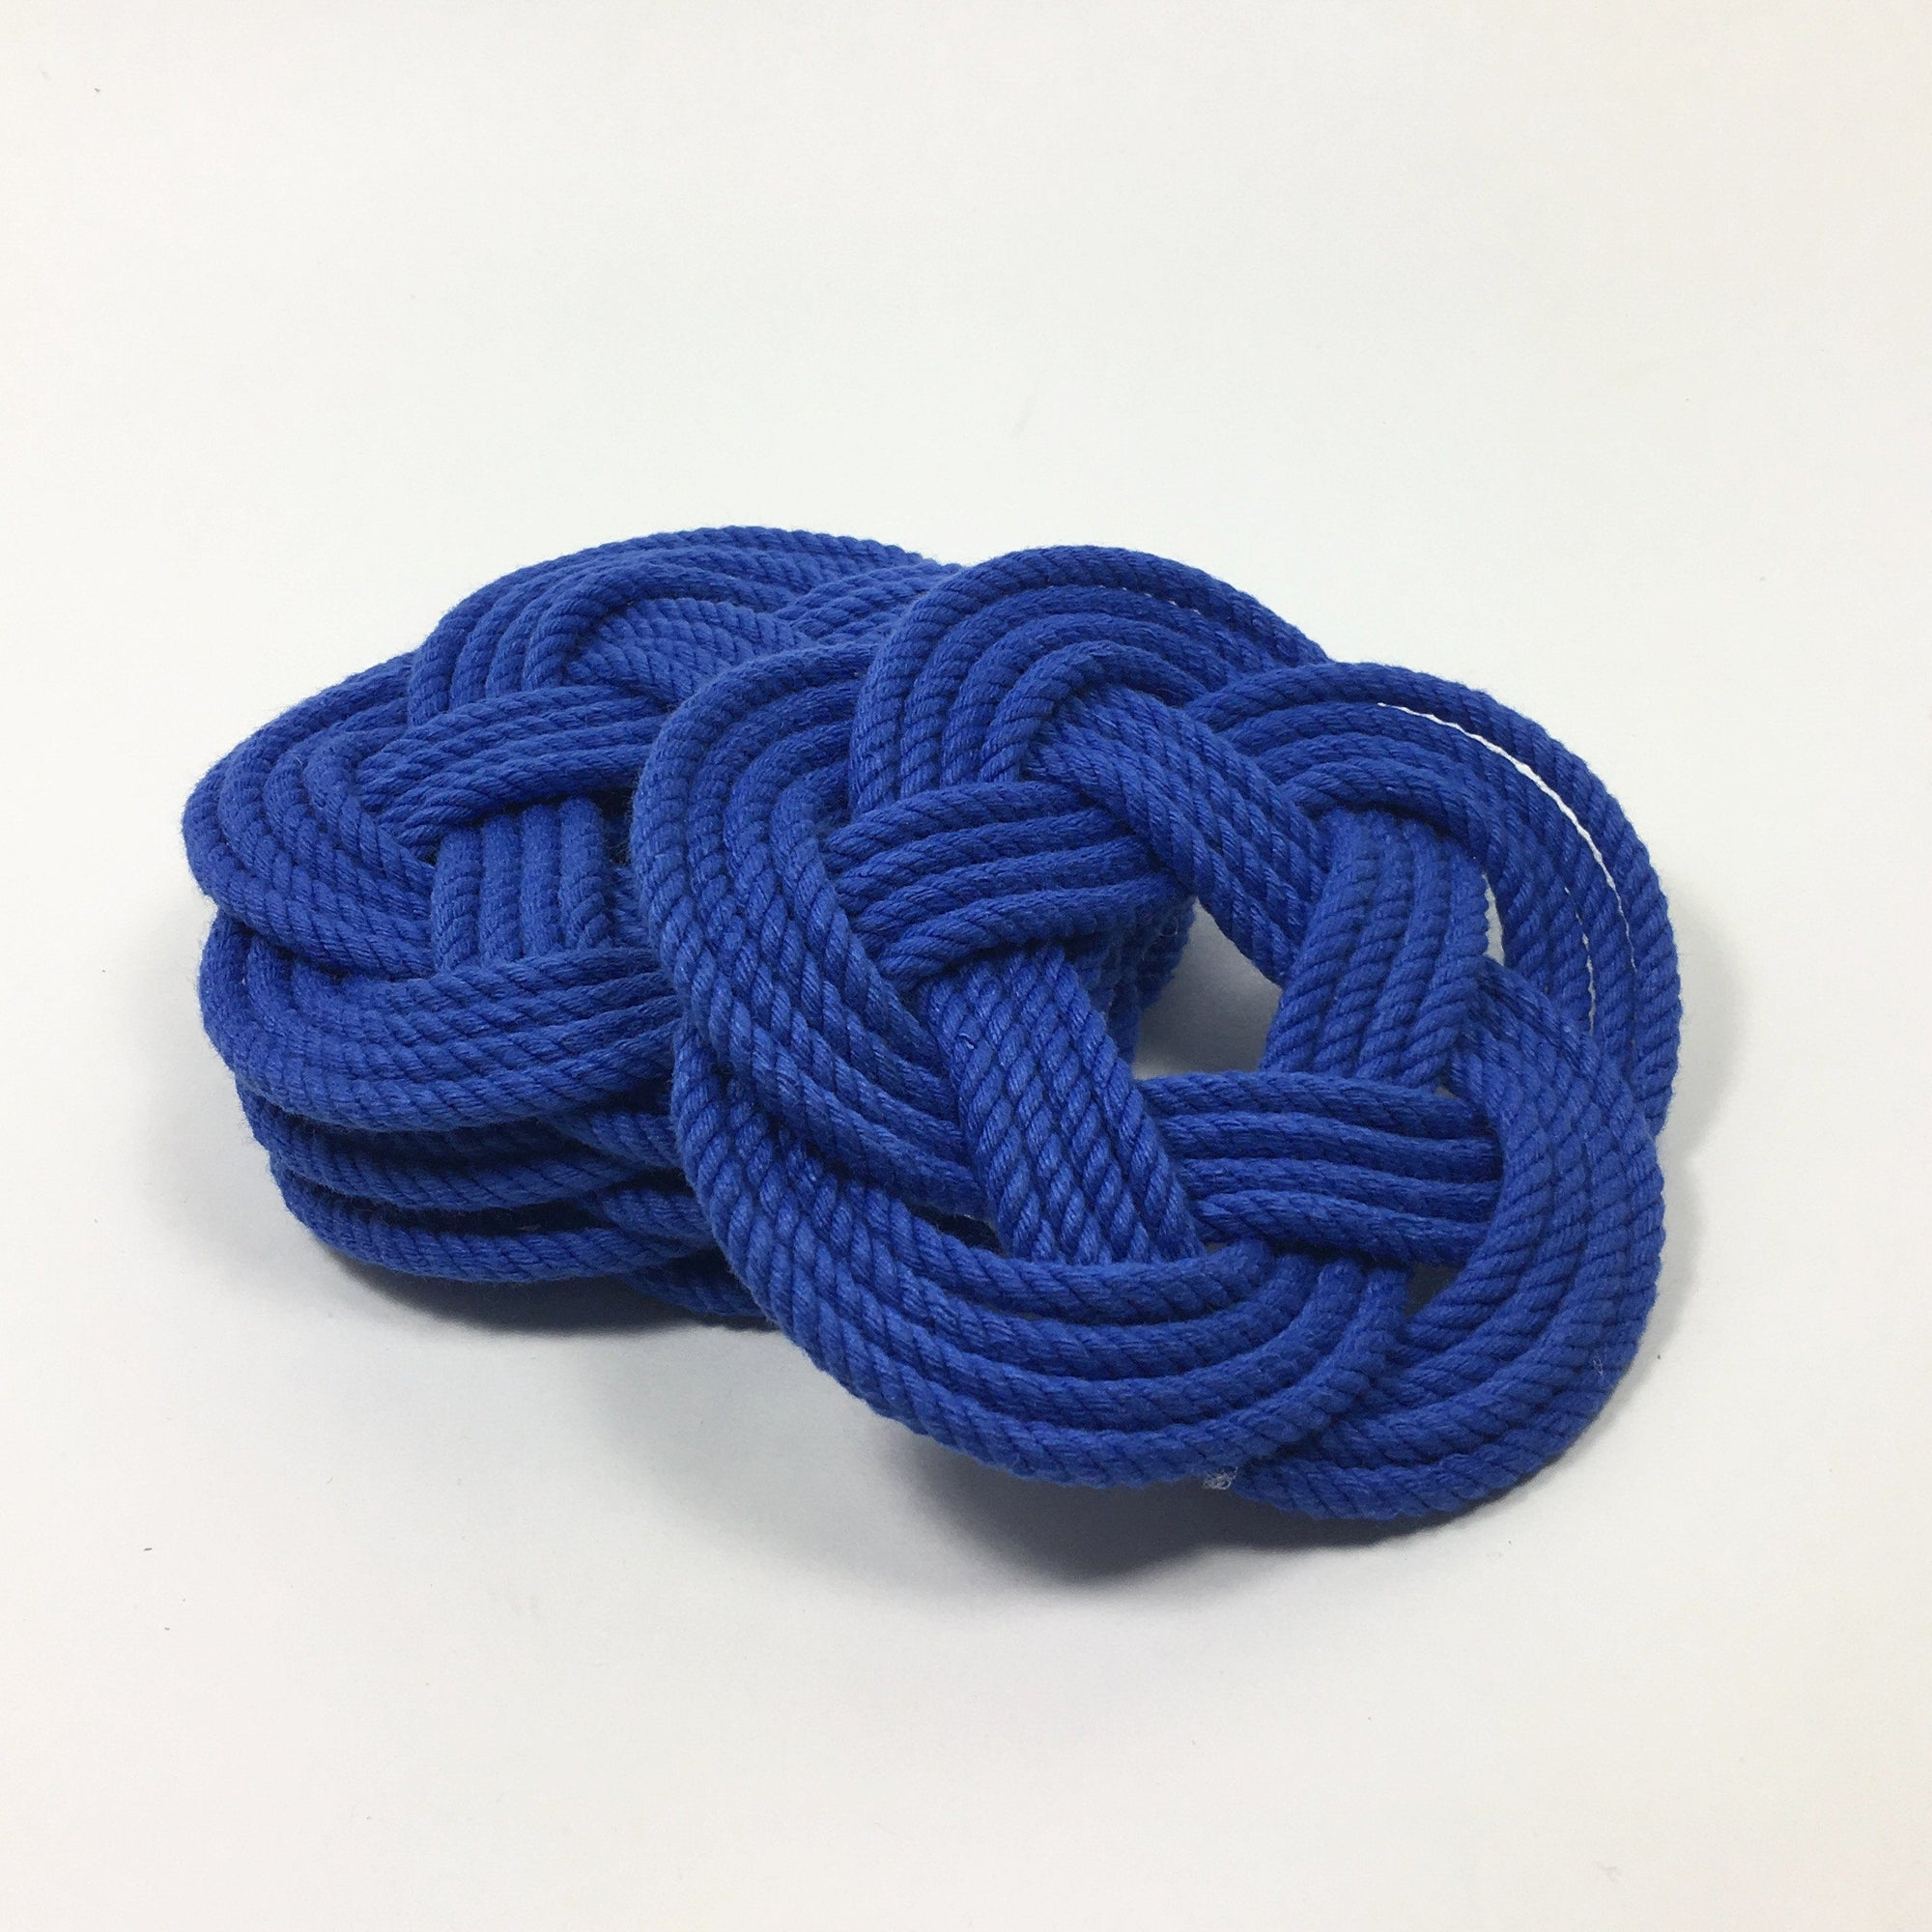 Nautical Knot Sailor Knot Coasters, woven in Royal Blue, Set of 4 handmade at Mystic Knotwork